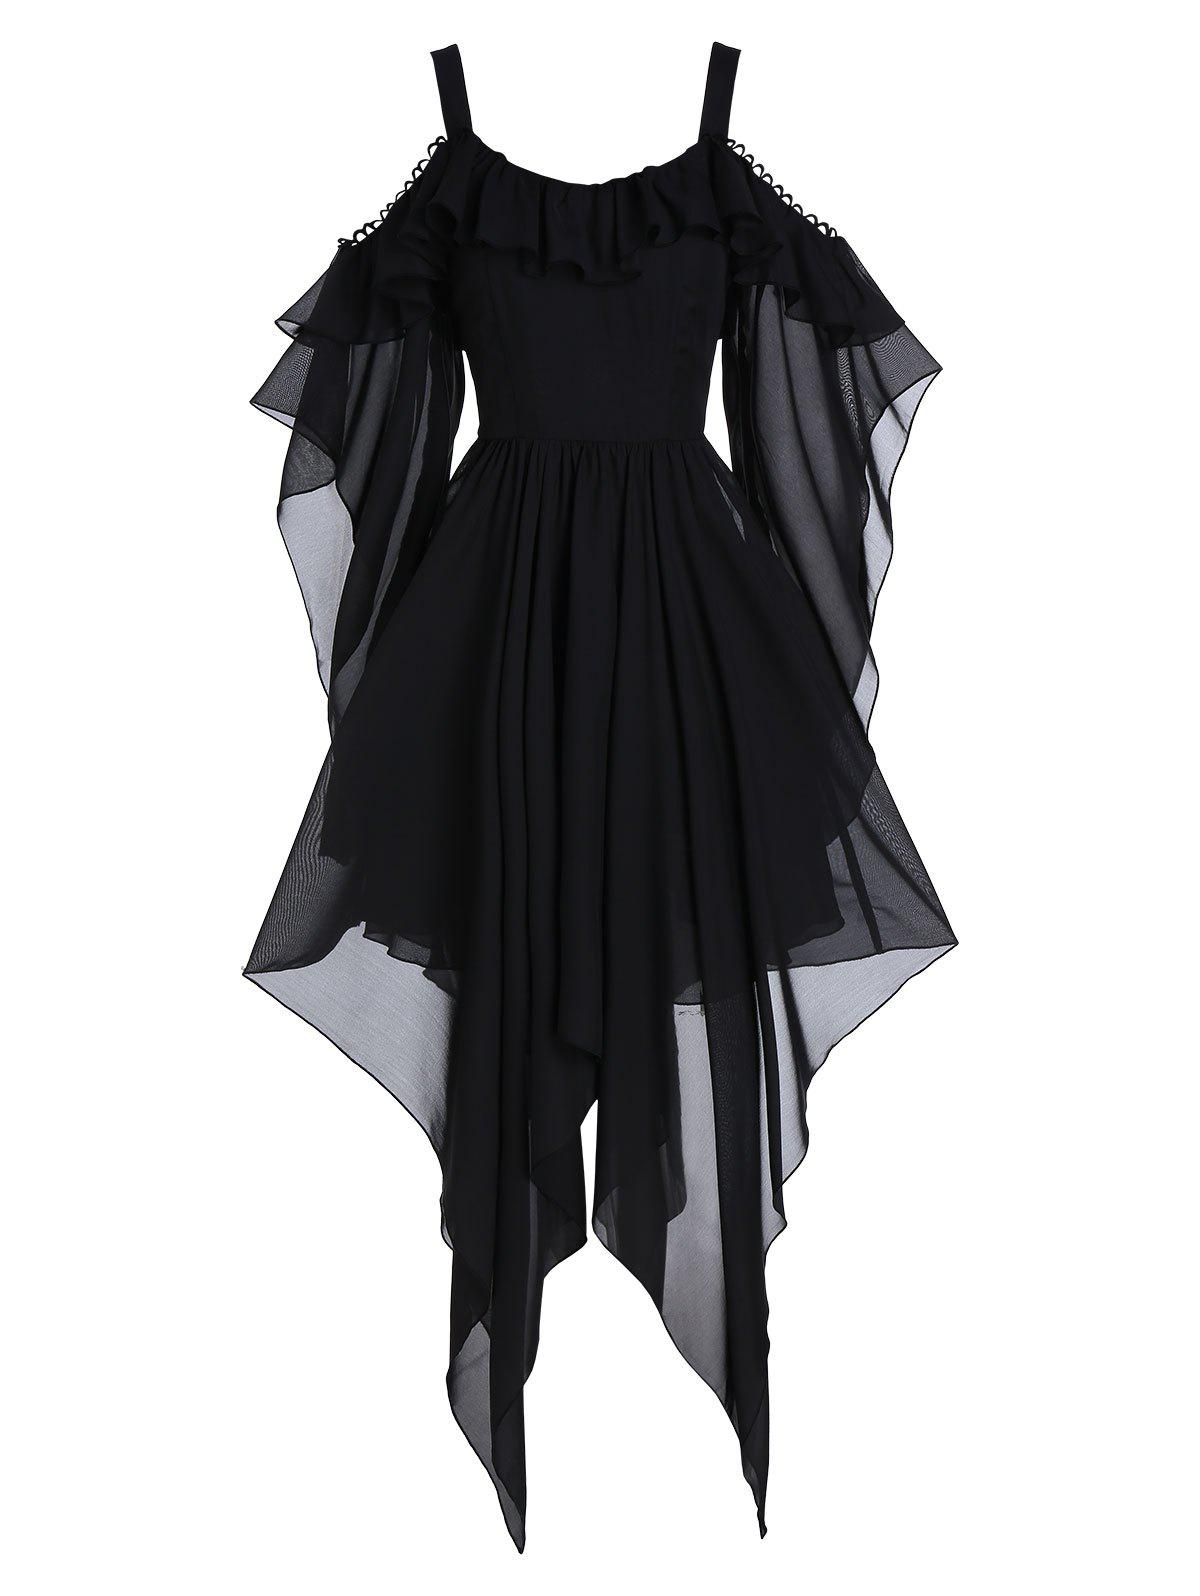 New Asymmetrical Picot Trim Open Shoulder Flounce Gothic Dress